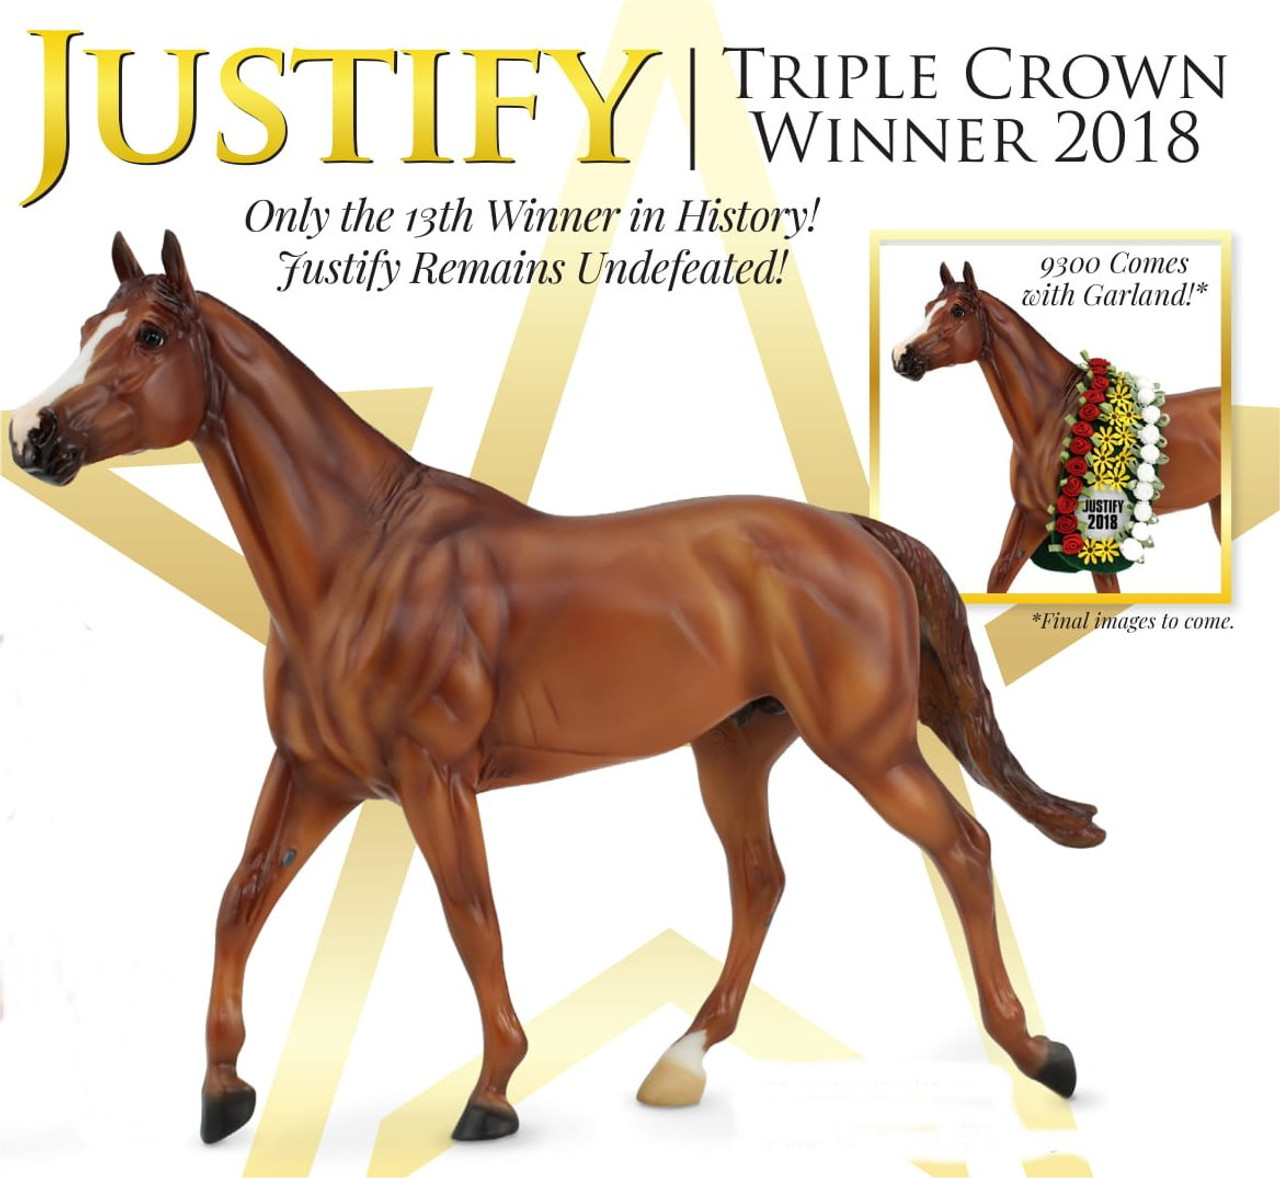 adcc60ecc976 Breyer Horses Traditional Triple Crown Winner Justify - Golden Oak Stables